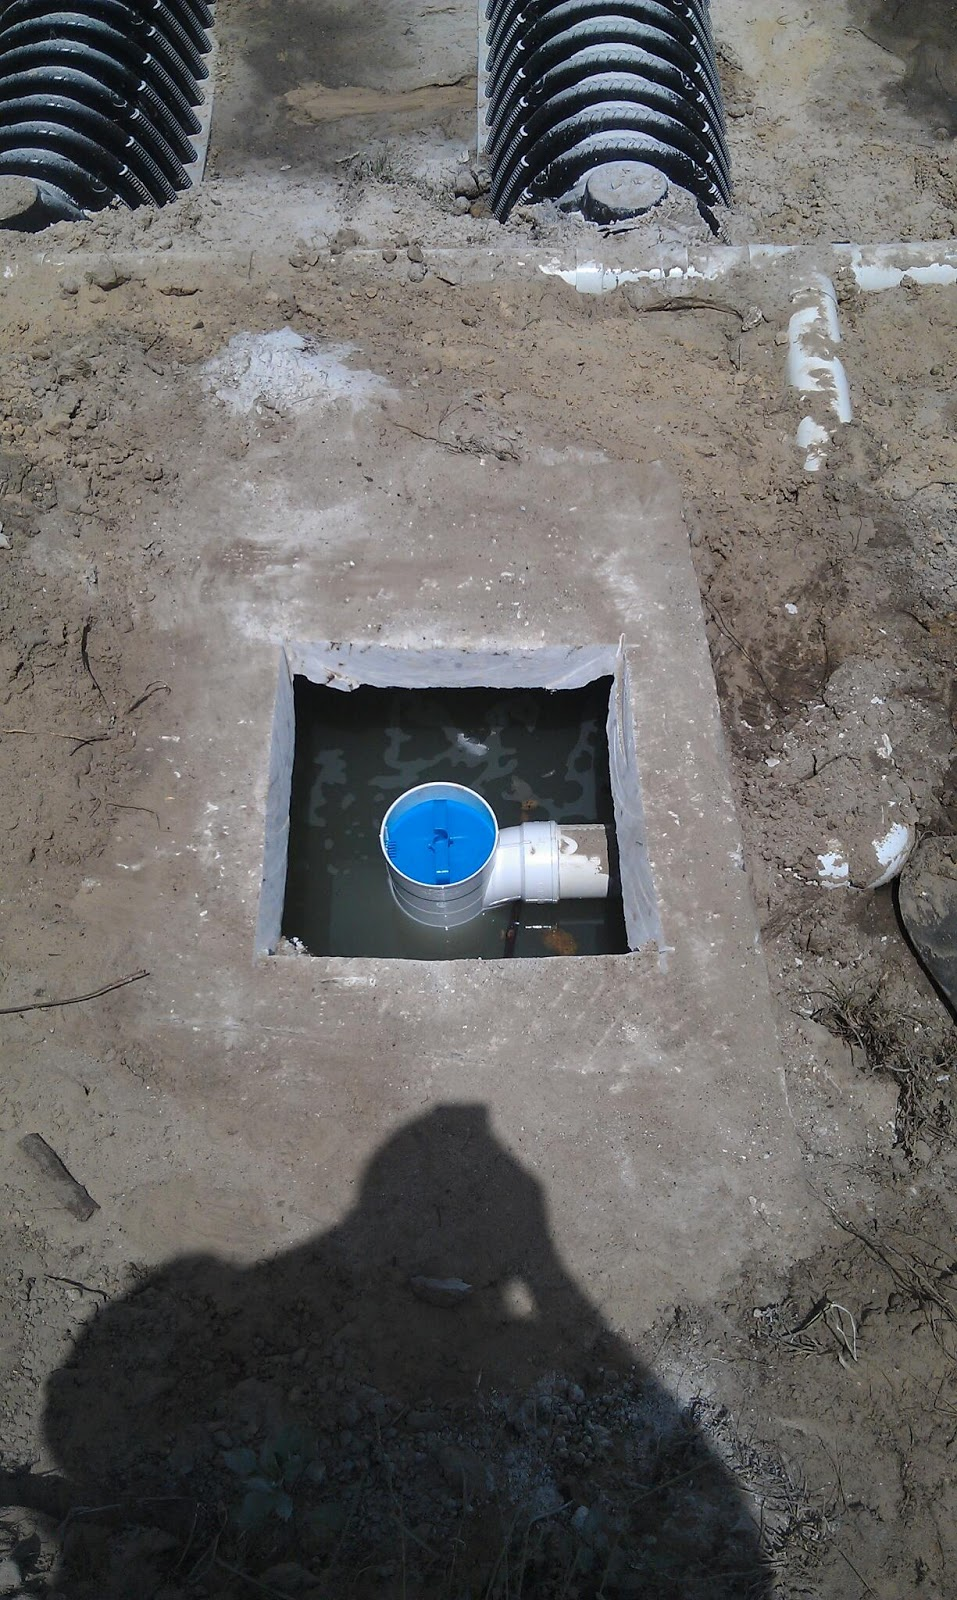 does your septic tank or drainfield back up into the house